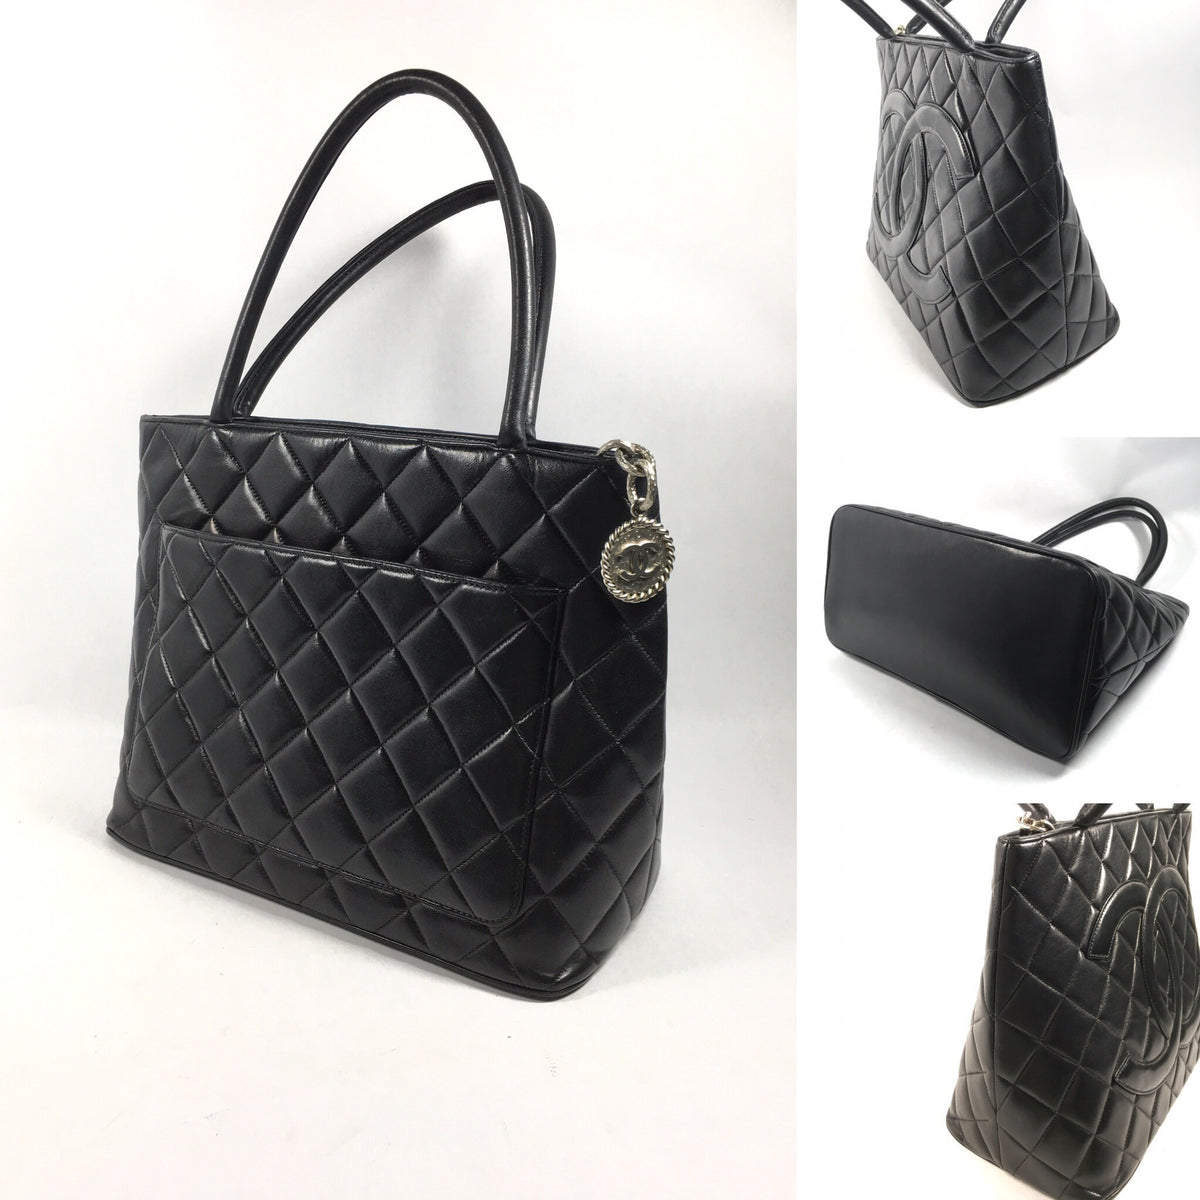 structured old fashion handbags sale master medium purses quilted flap bag calfskin shoulder chanel id bags medallion boy with leather glazed for v